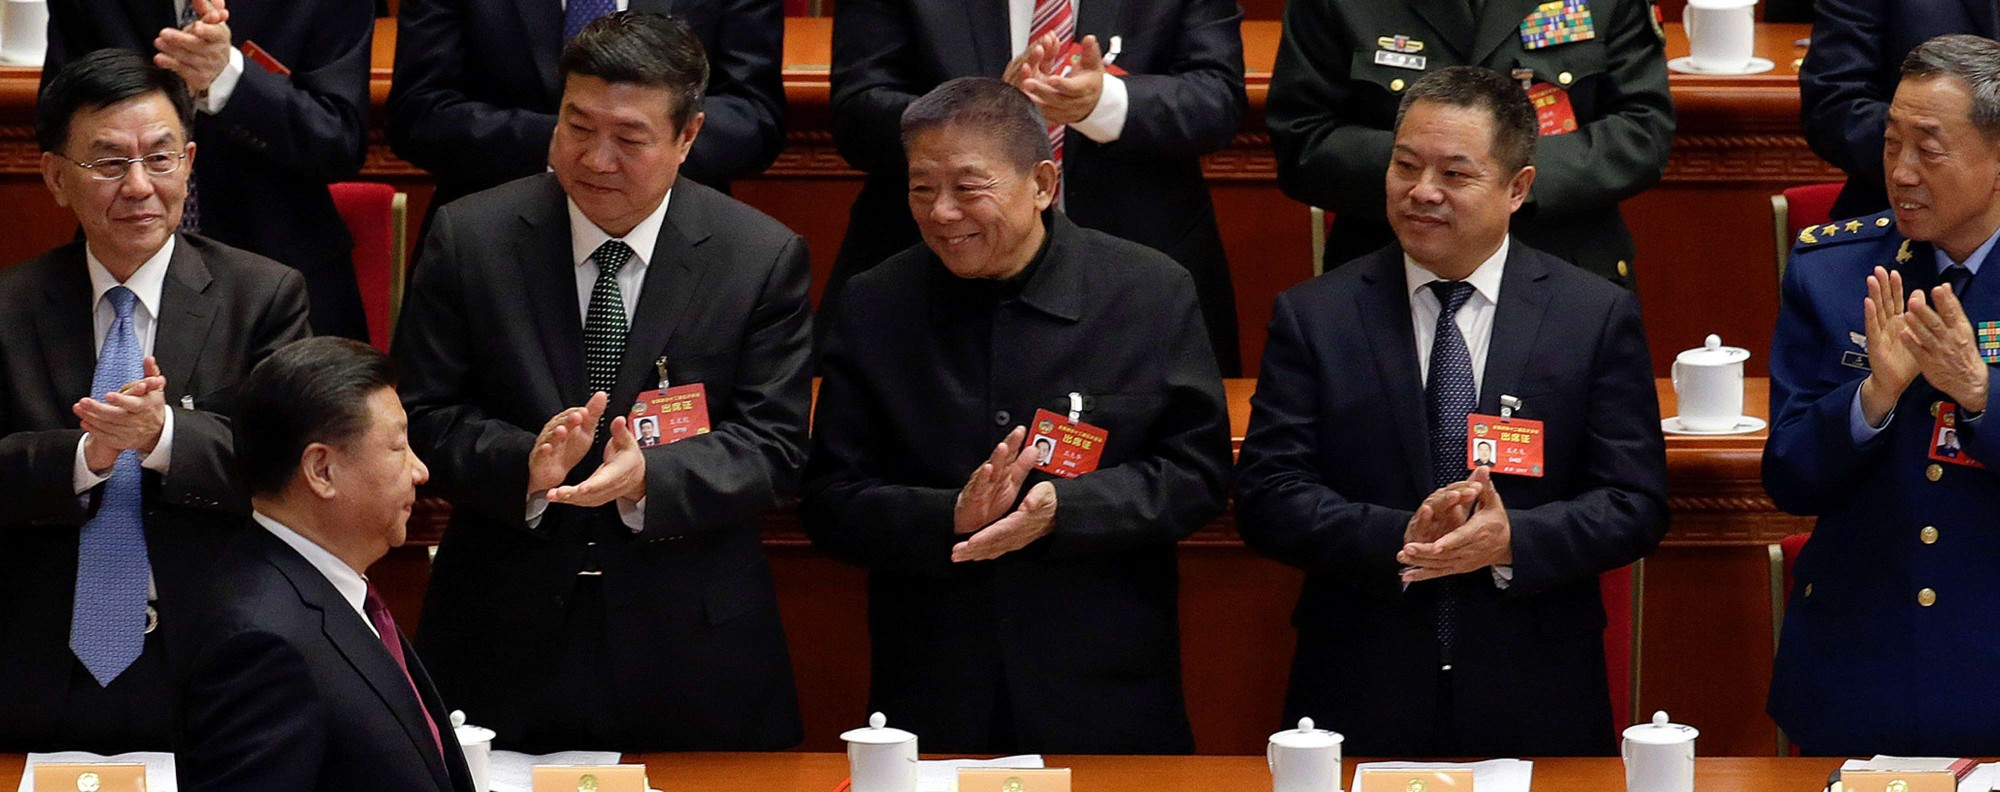 China's President Xi Jinping at the CPPCC. Photo: Reuters